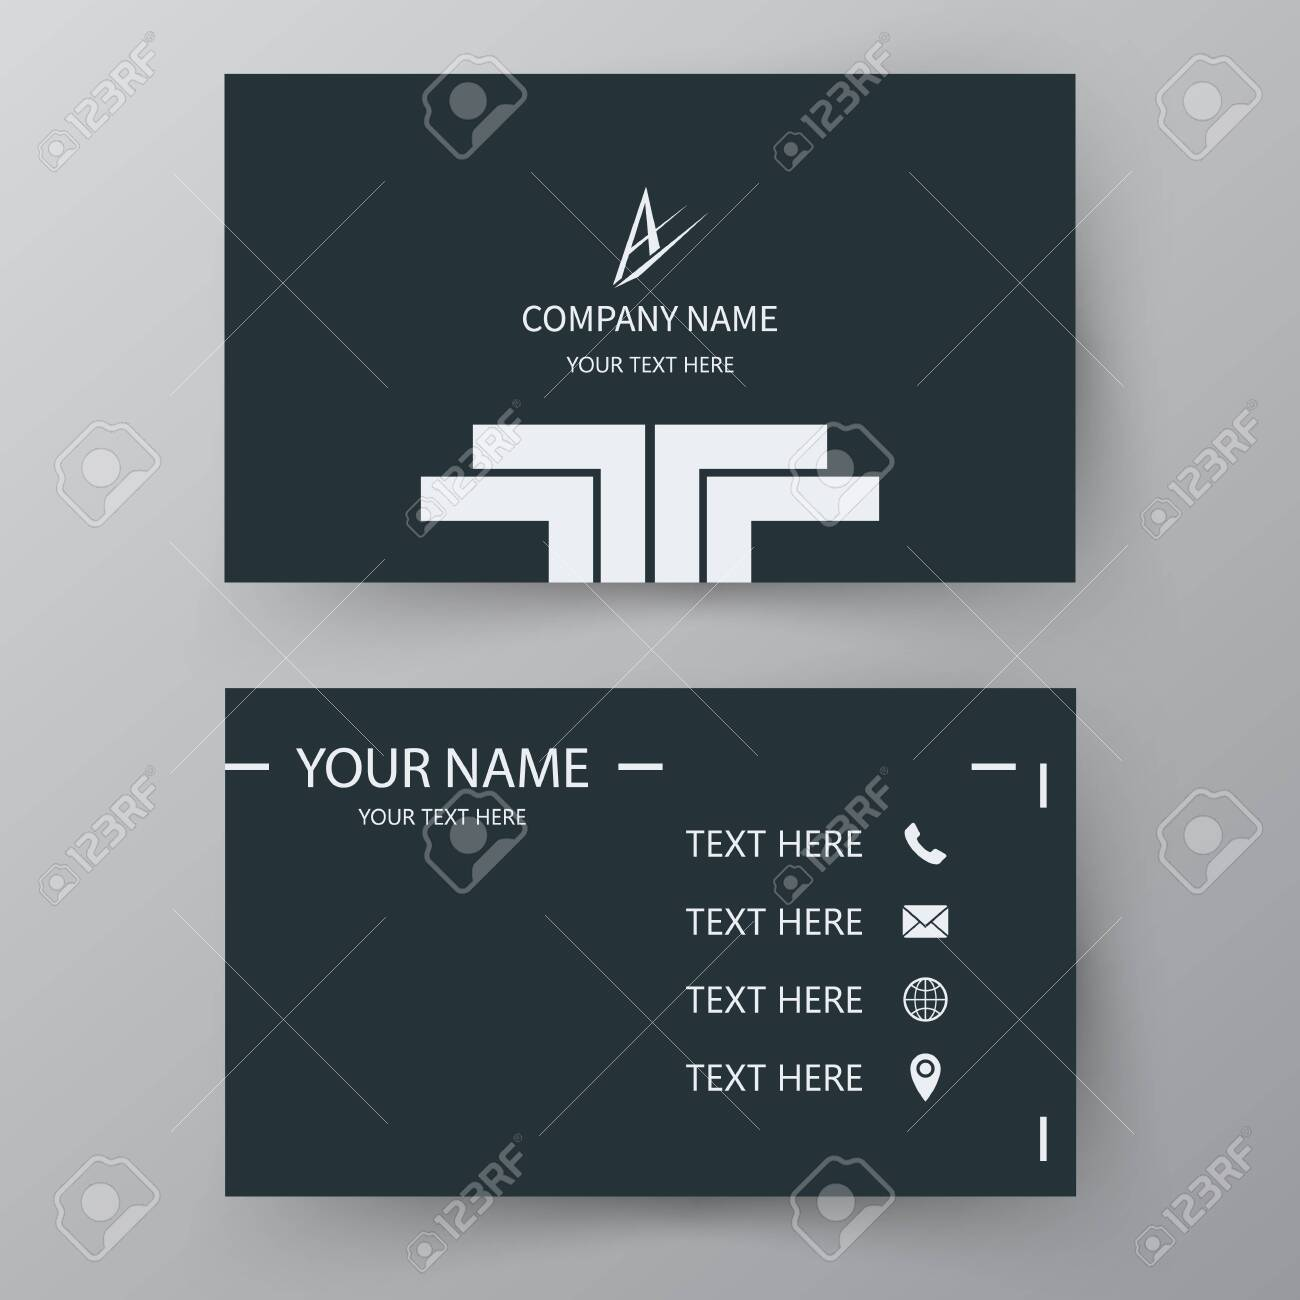 Modern presentation card. Vector business card. Visiting card for business and personal use. Vector illustration design. - 143573463